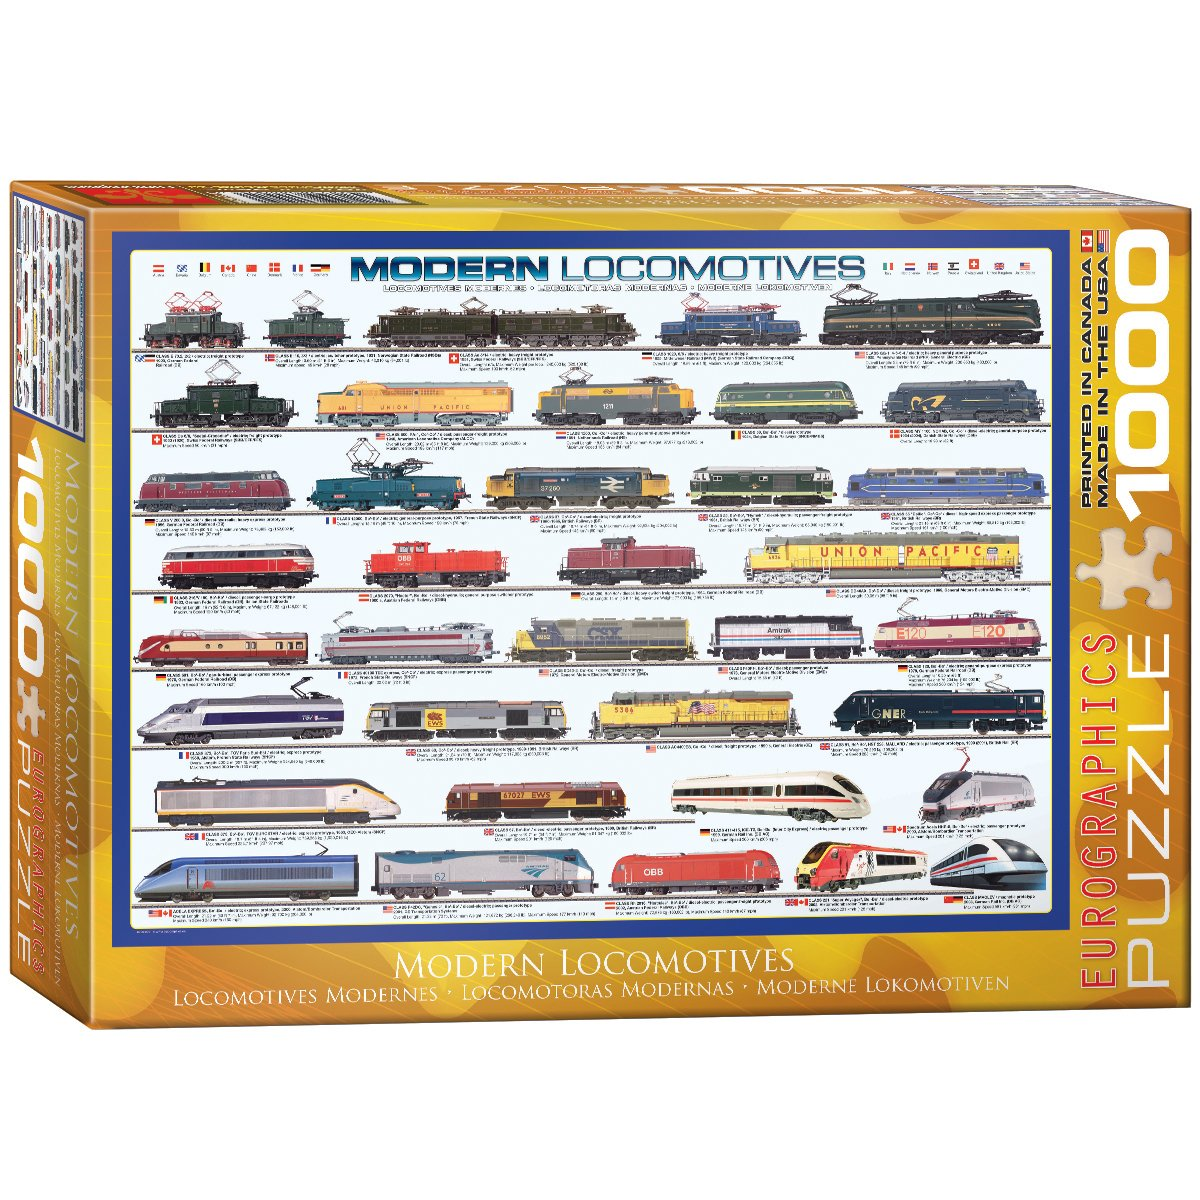 Eurographics Modern Locomotives 1000-Piece Puzzle Eurographics - Toys 6000-0091